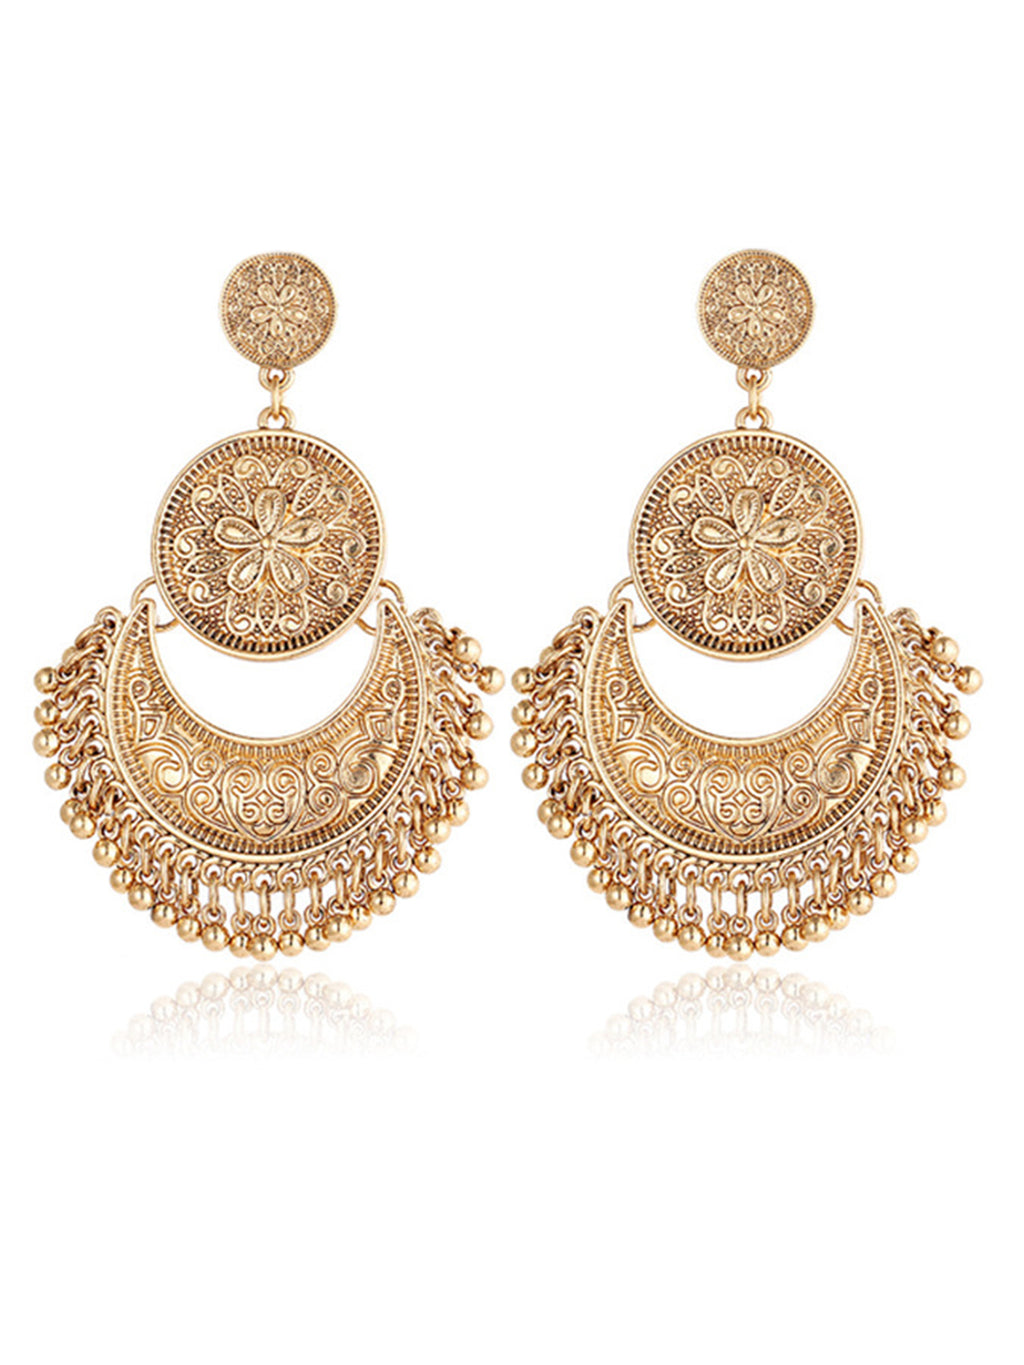 Womens Retro Ethnic Tassel Alloy Flower Moon Drop Dangle Earrings